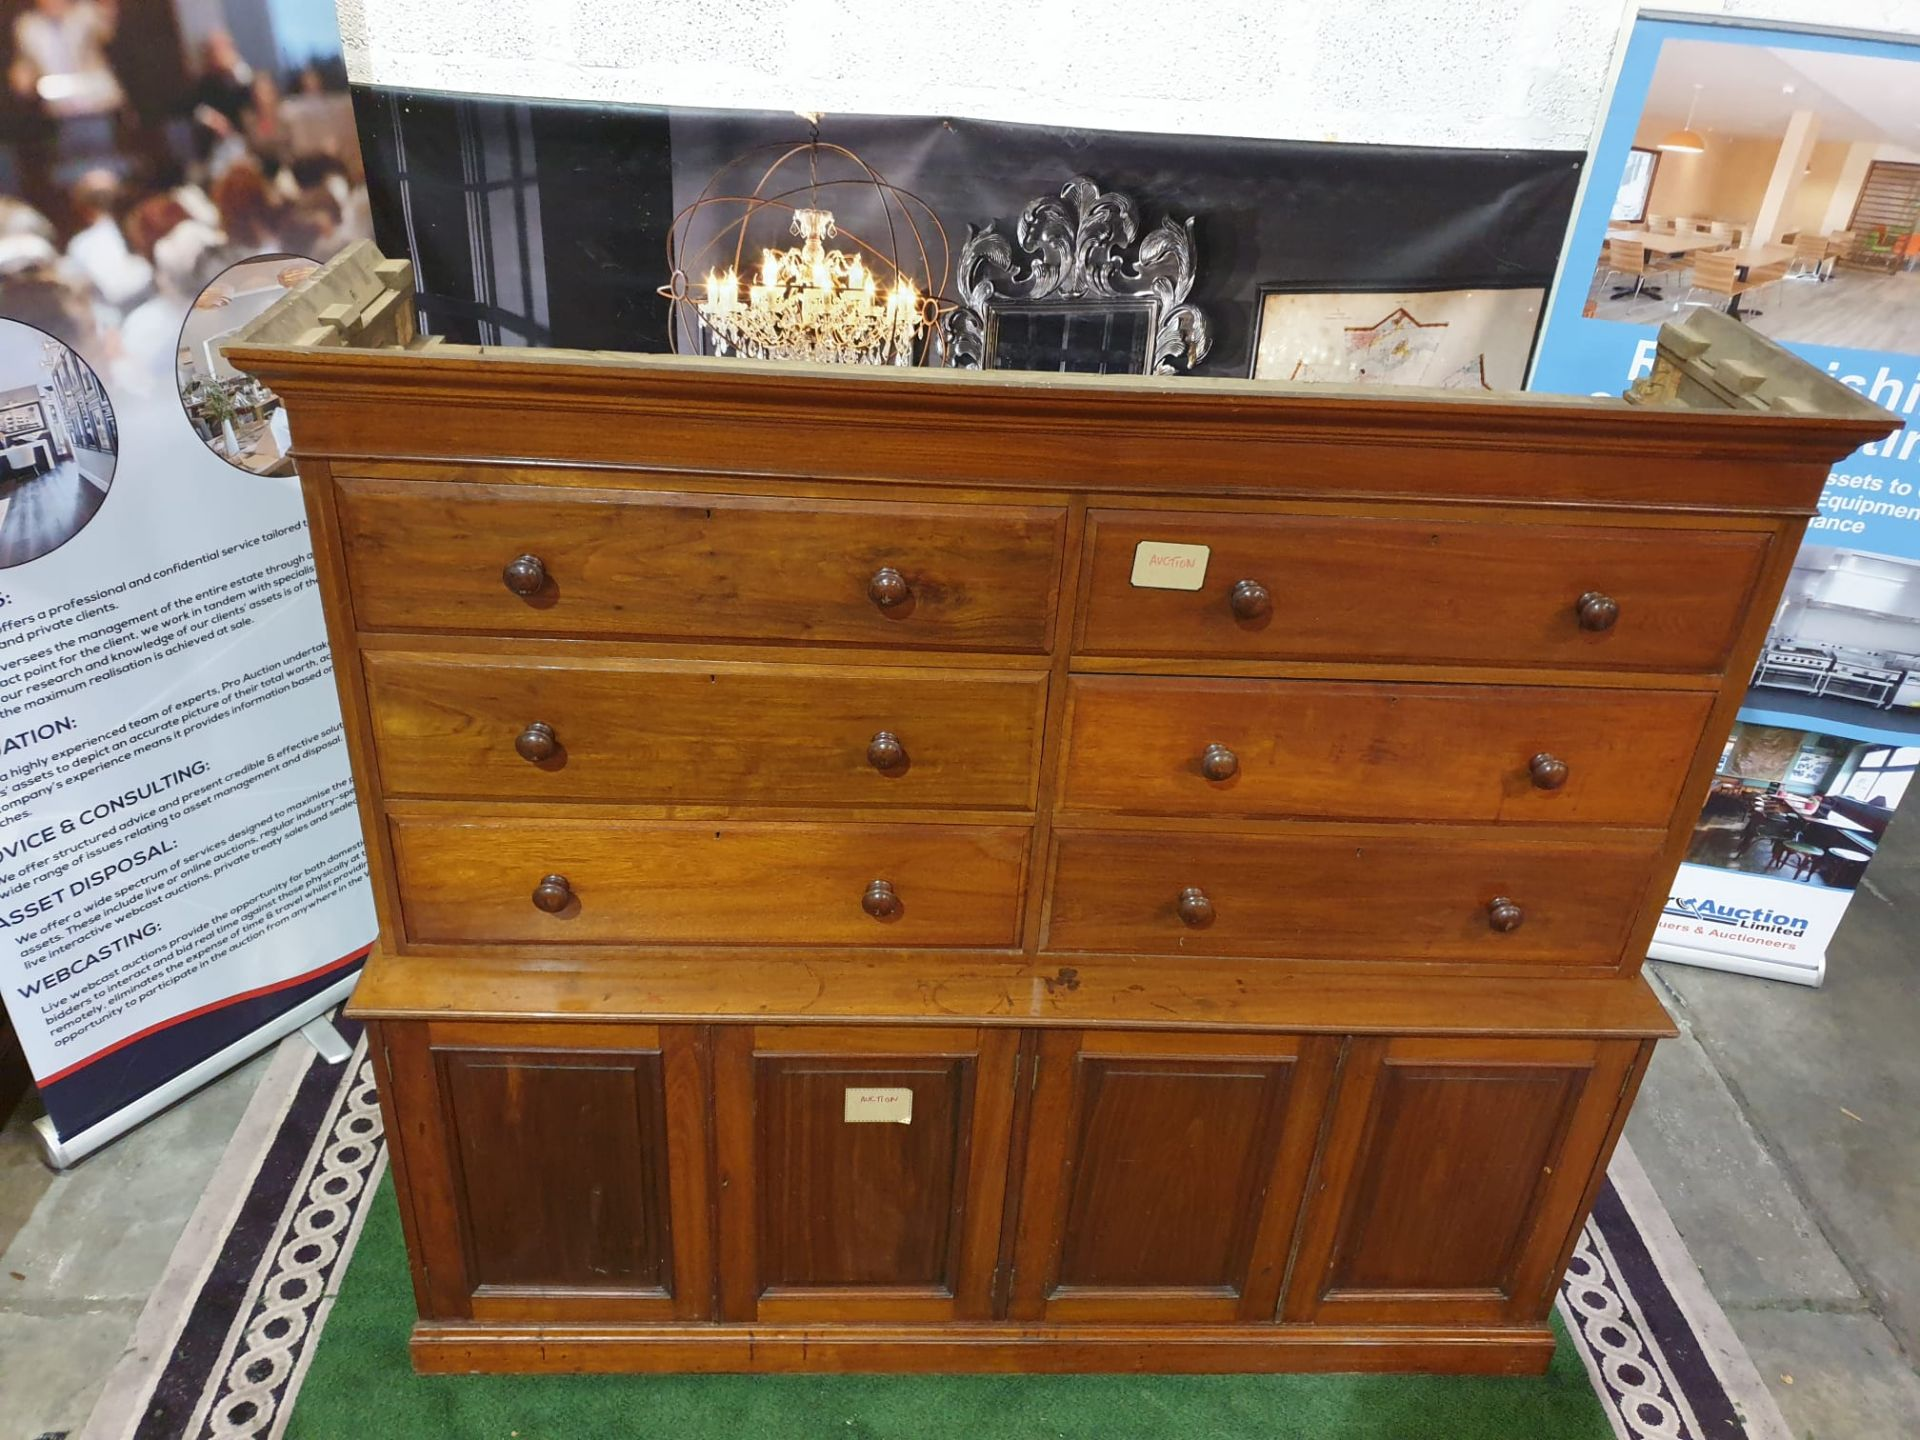 A late Victorian / early Edwardian mahogany chest combined chest of drawers and cupboard. The - Image 4 of 5